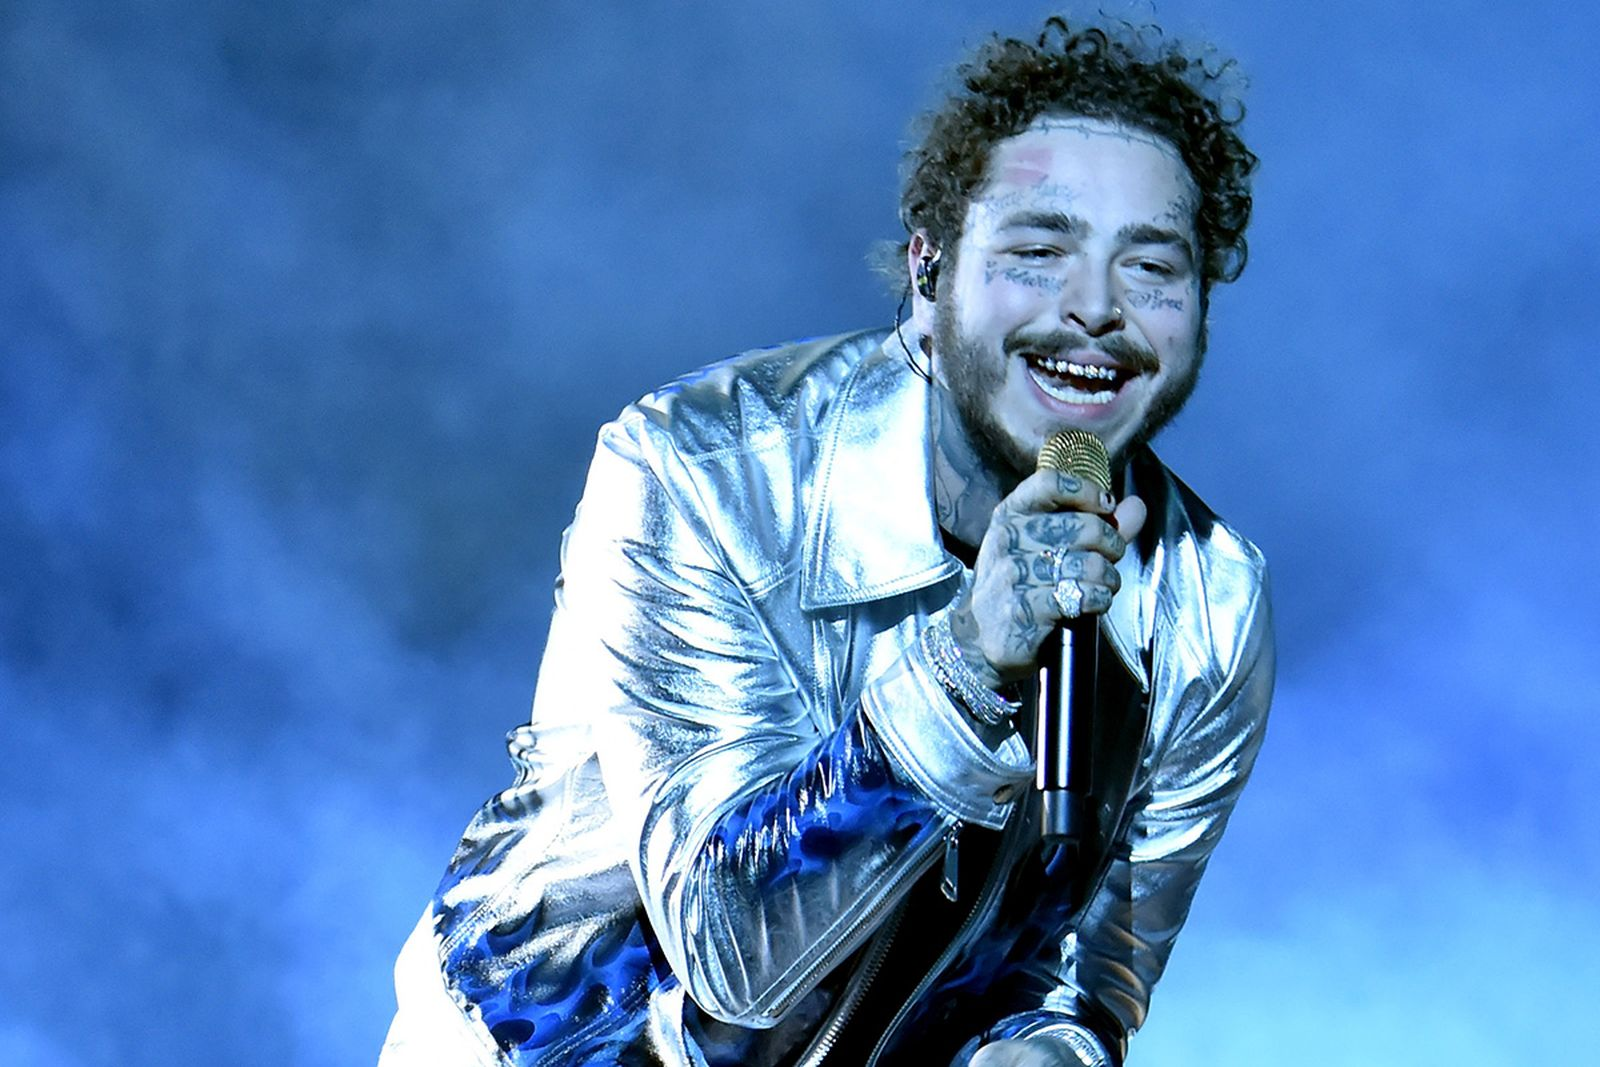 Post Malone performs onstage during the 2018 American Music Awards